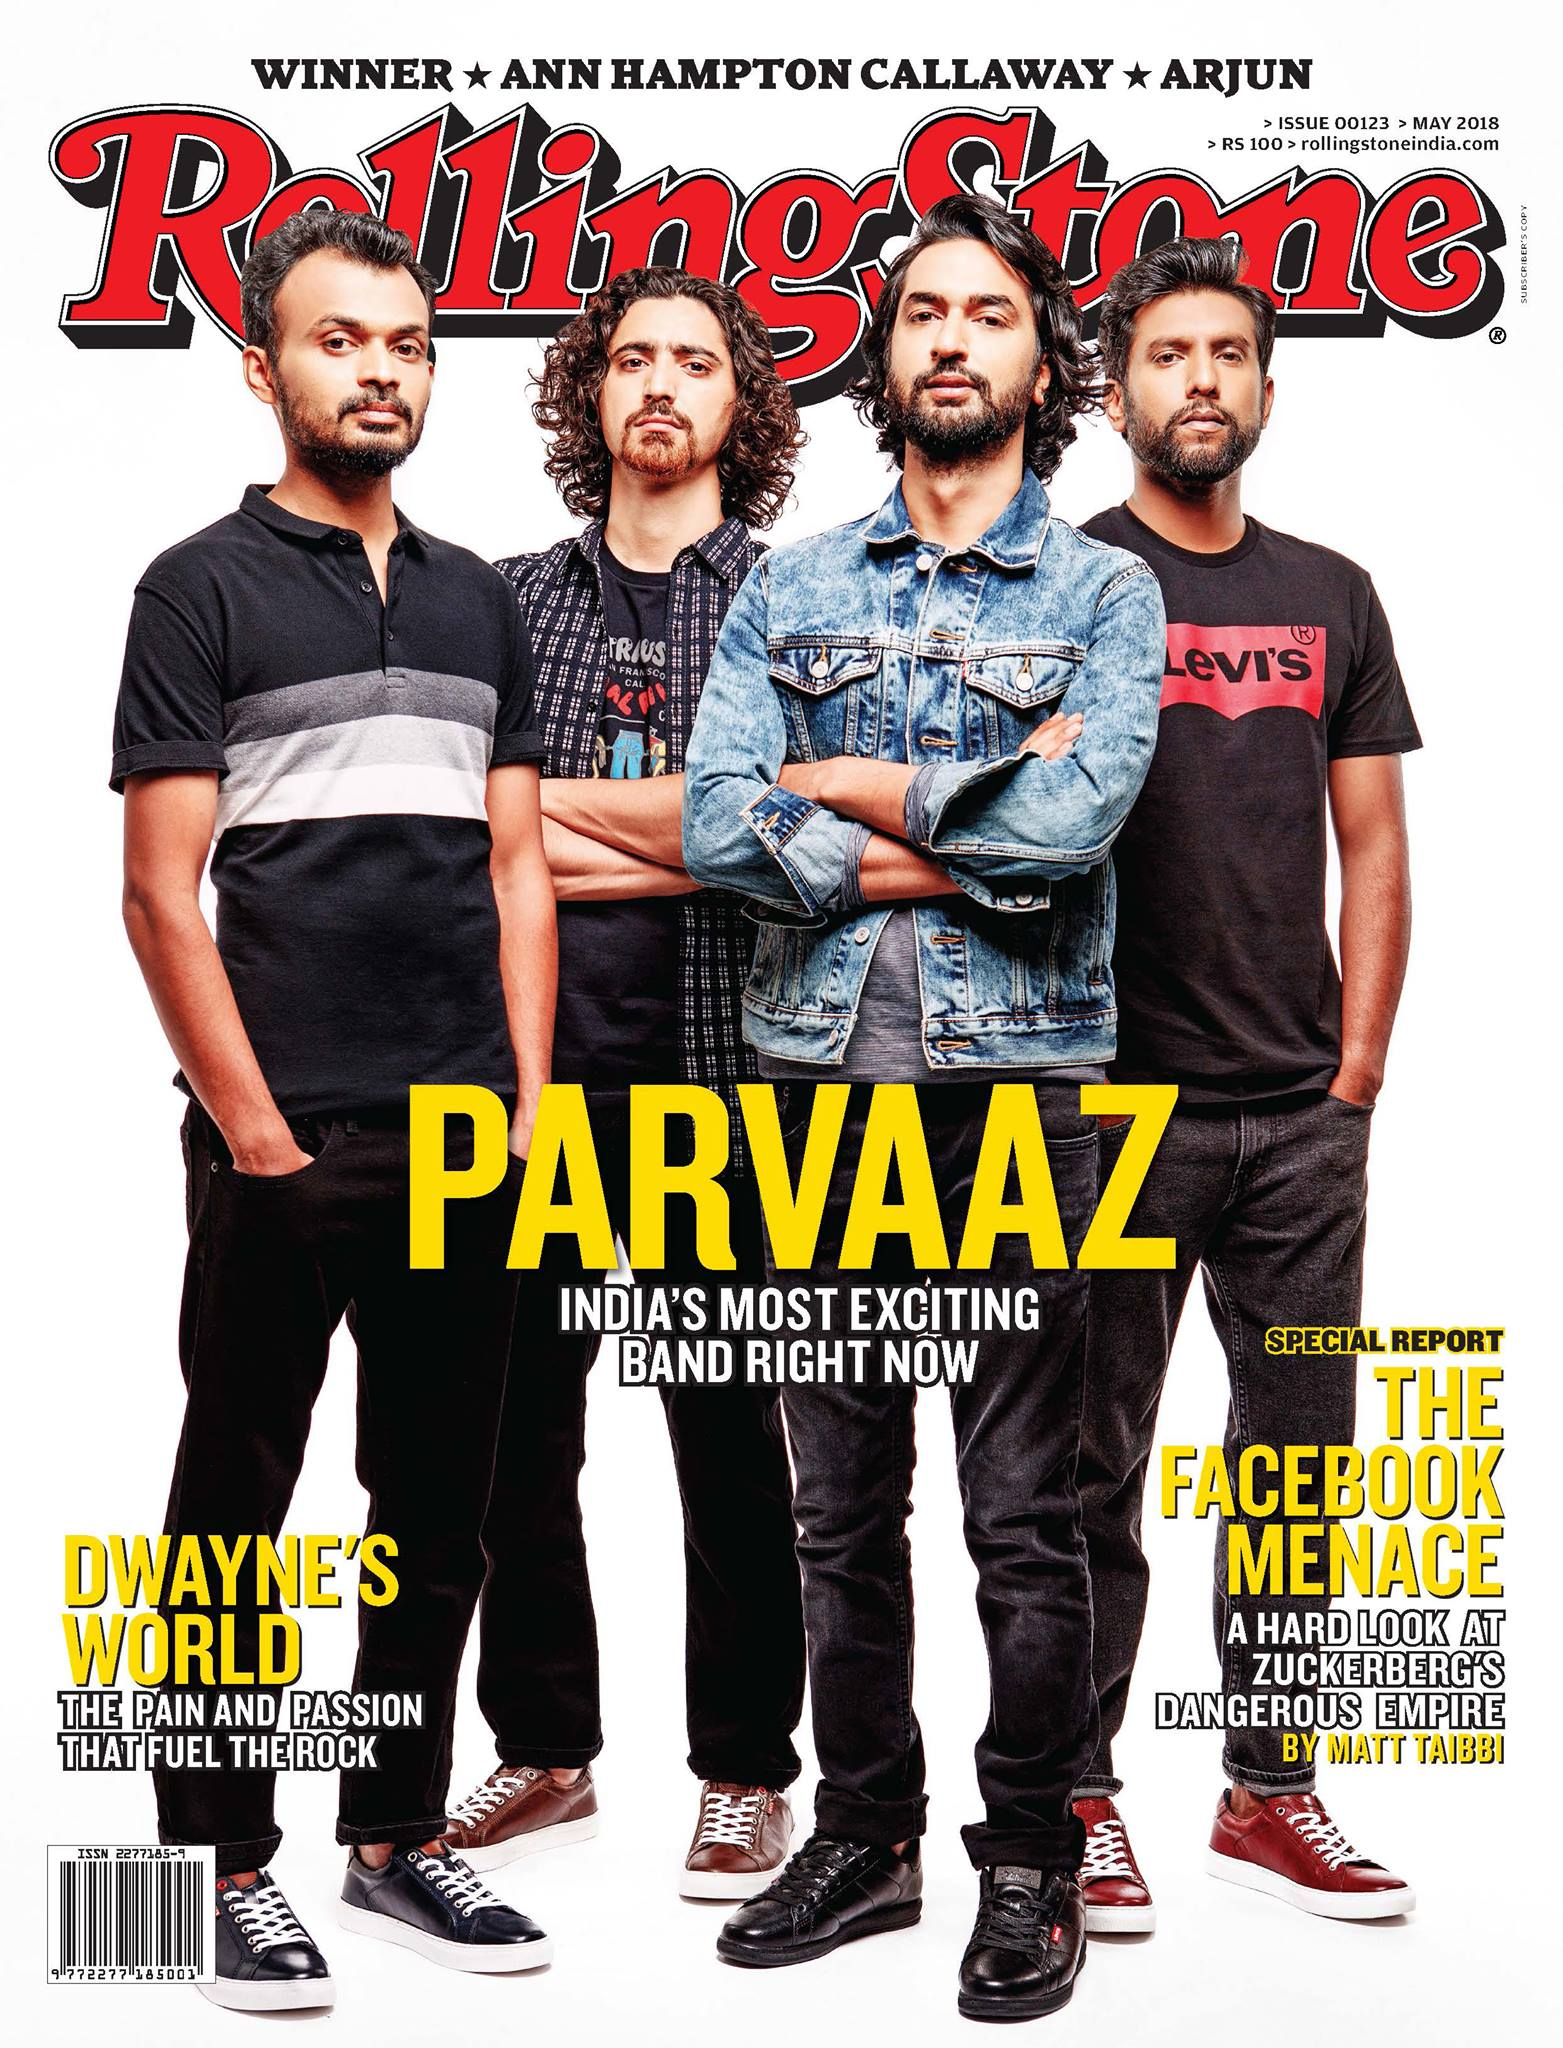 34050225 2001874776512866 3268000388862705664 n Parvaaz is an Indian rock band formed in 2010 in Bangalore.